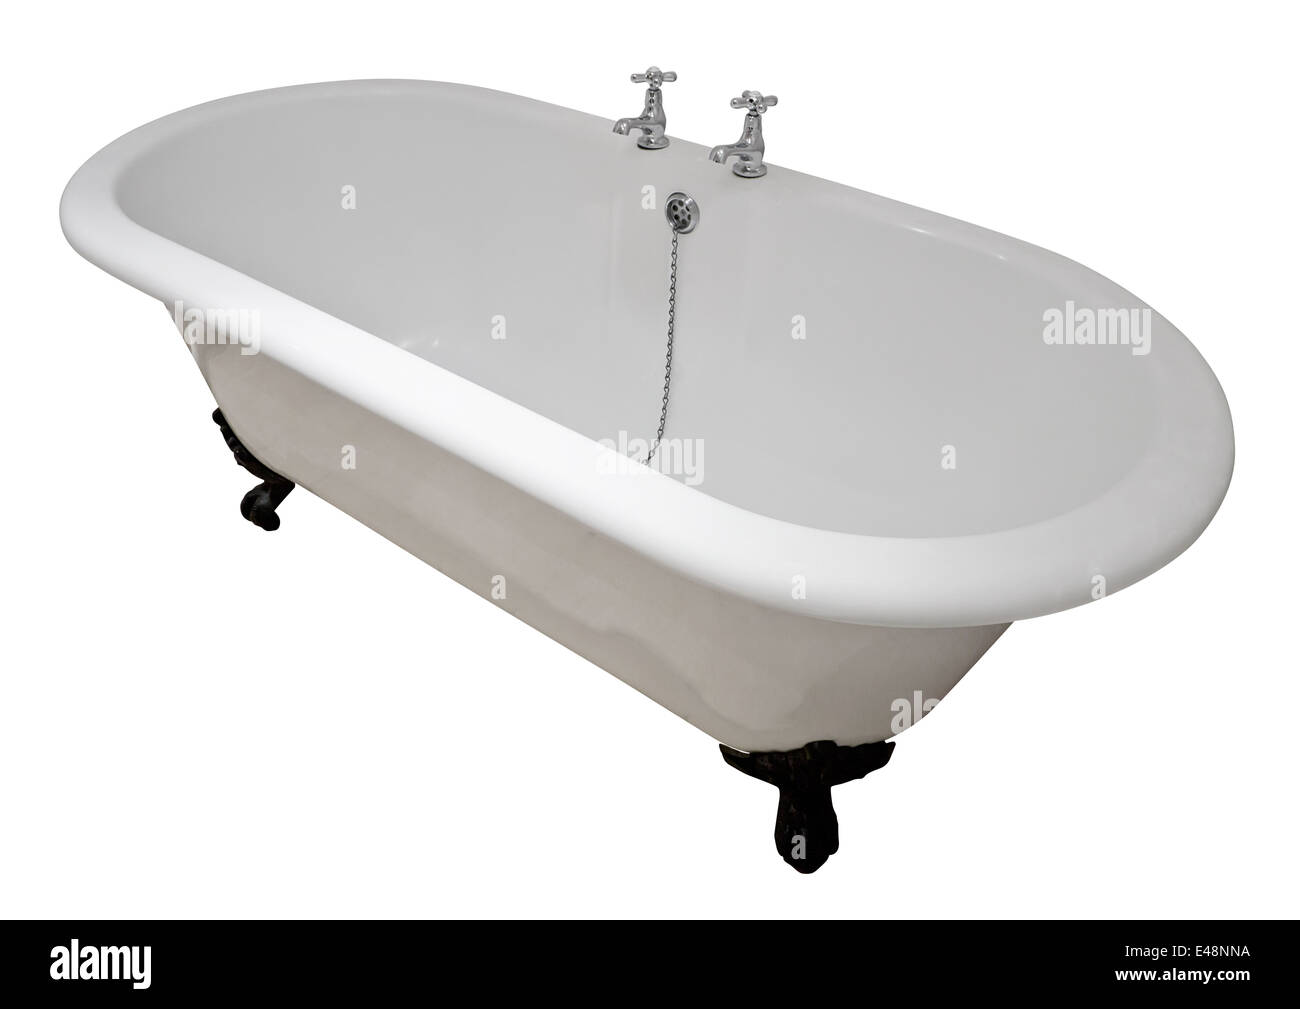 Luxury white flat rim roll top clawfoot bathtub isolated against a white background - Stock Image